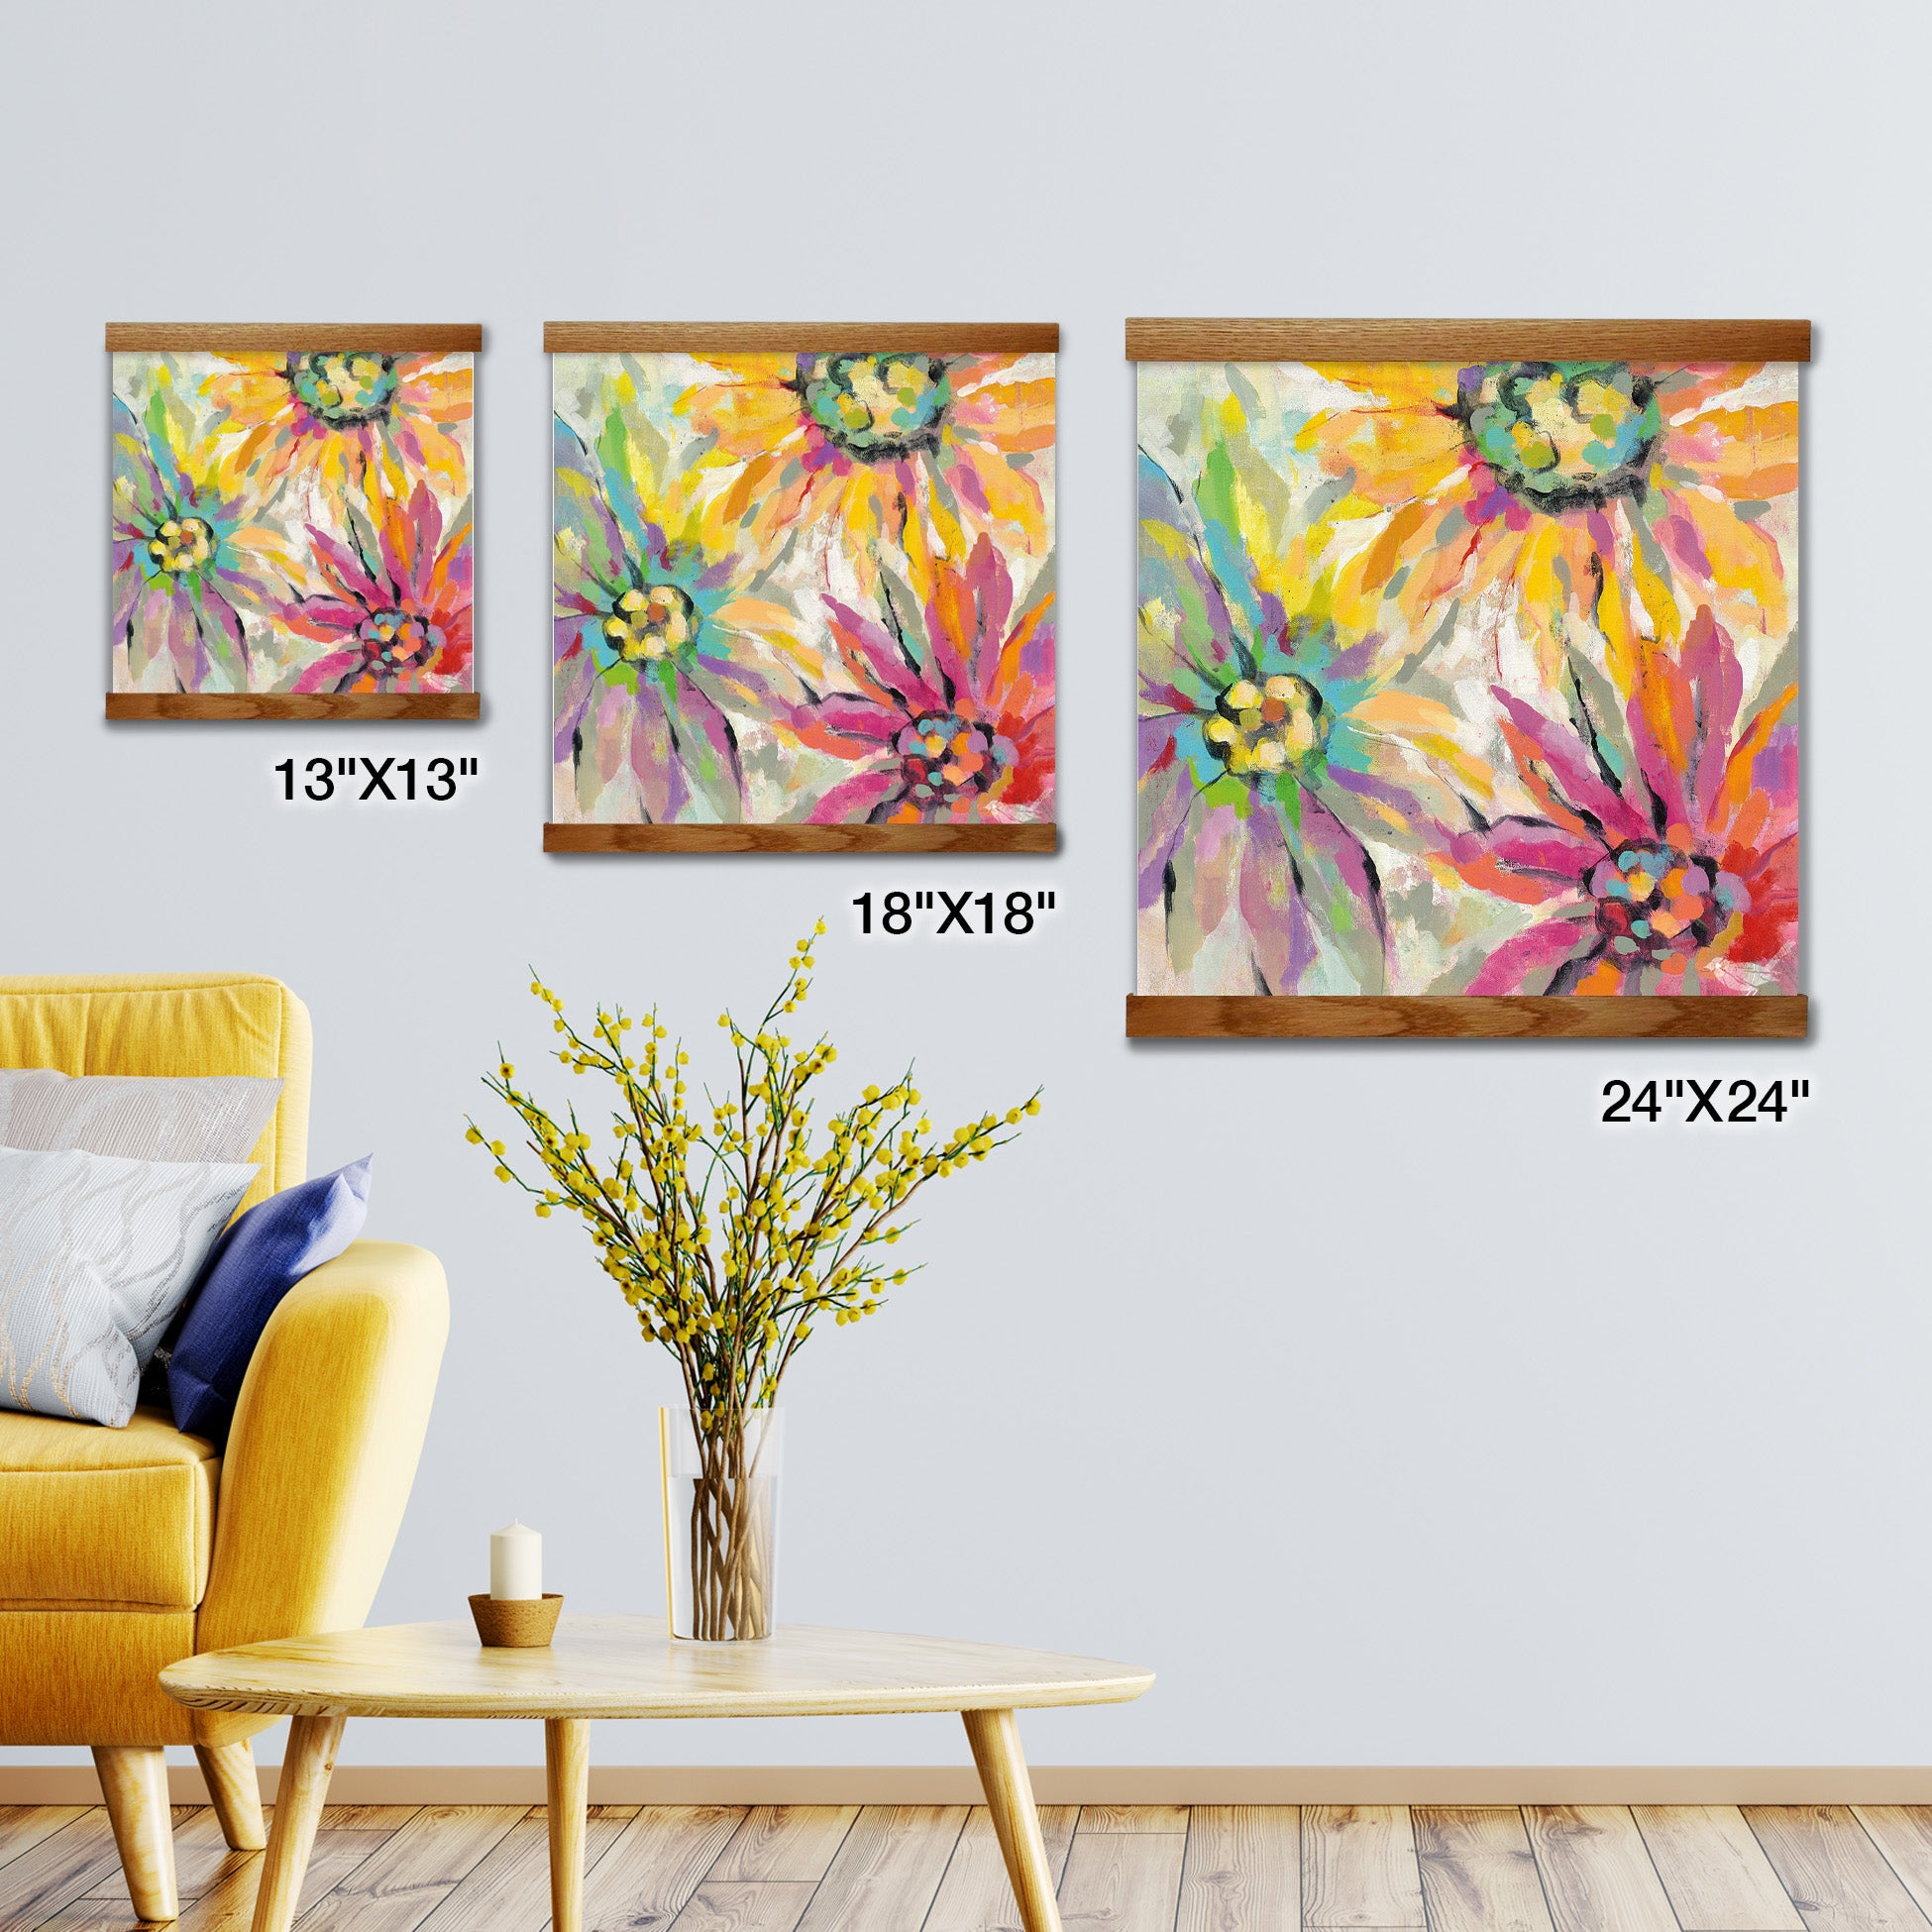 Abstracted Petals Artwork Framed